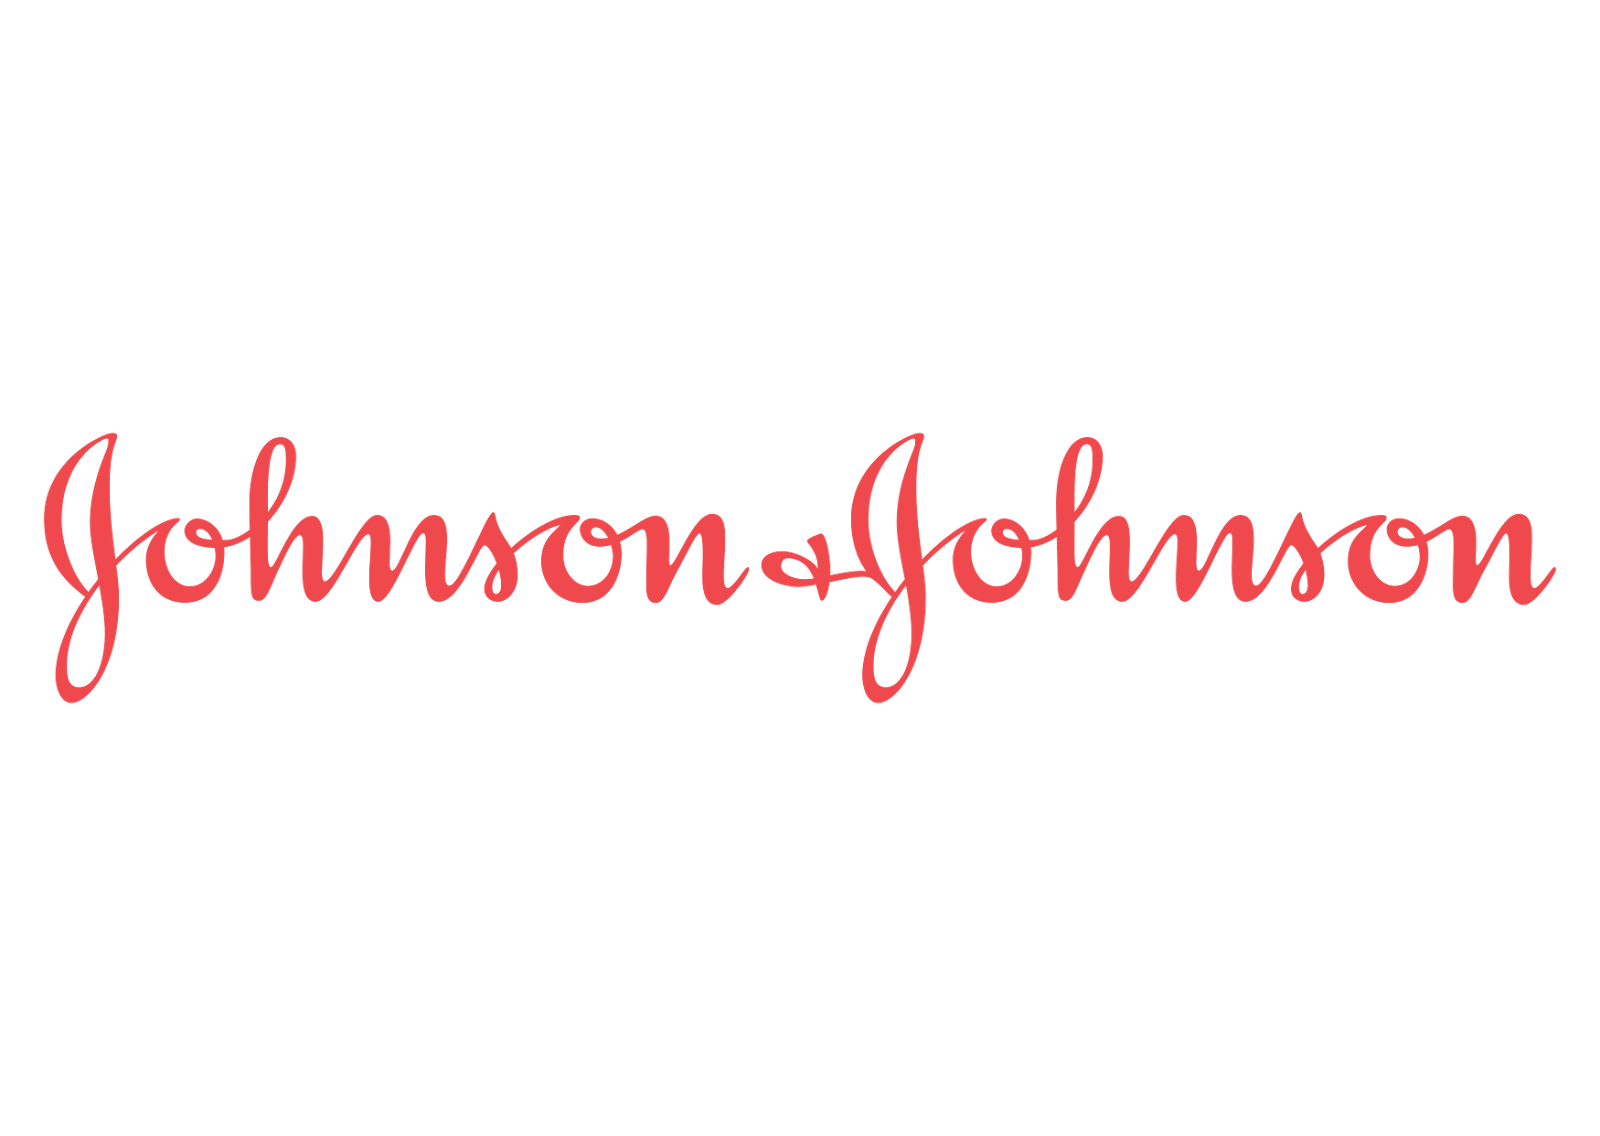 johnson johnson is a defensive stock and should be in all